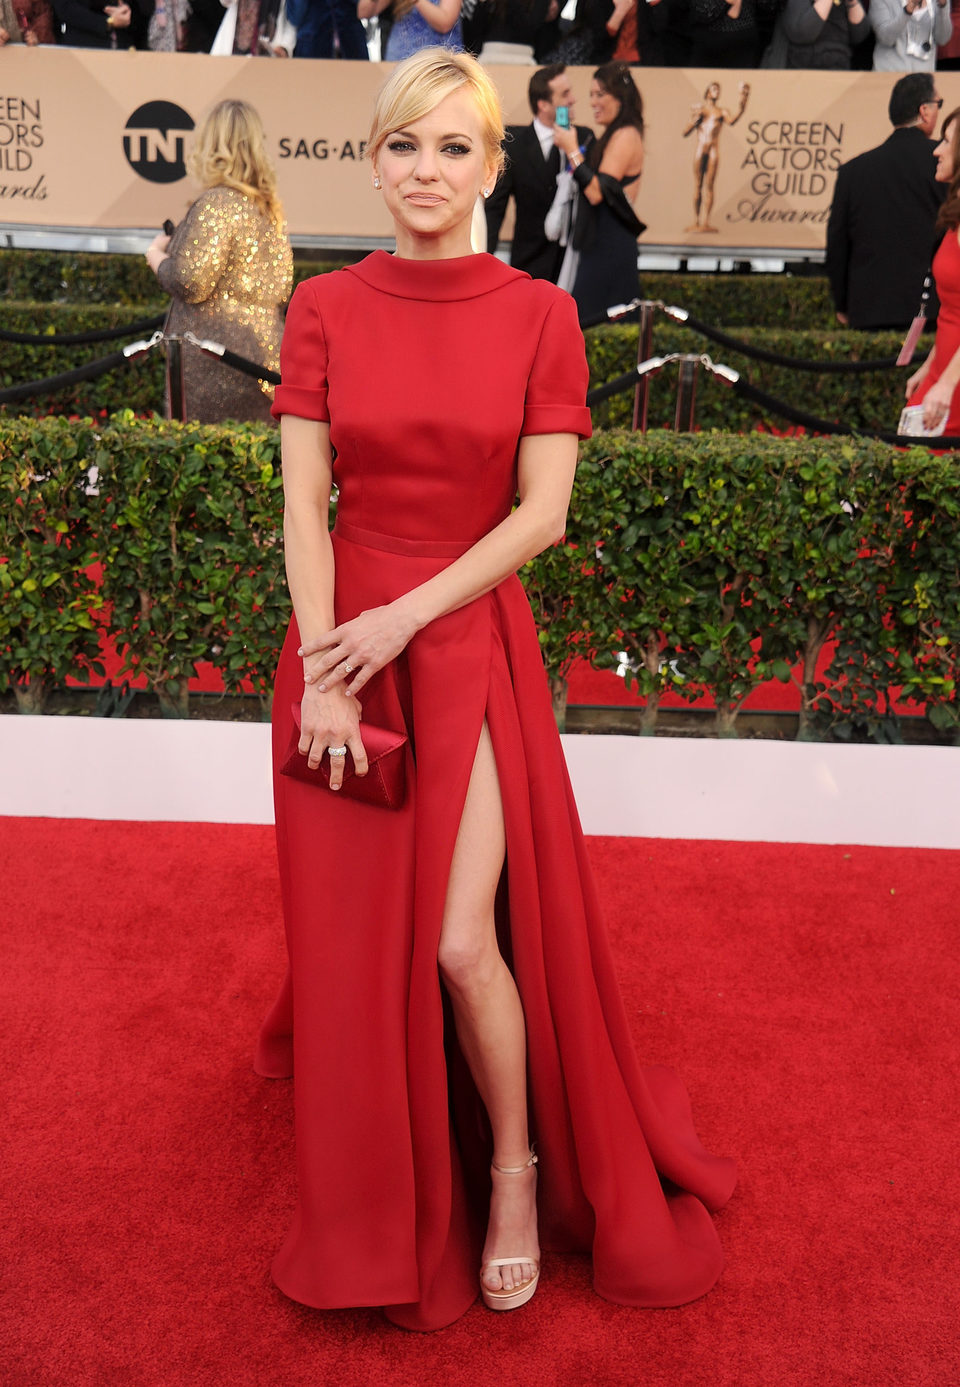 Anna Faris at the SAG Awards 2016 red carpet